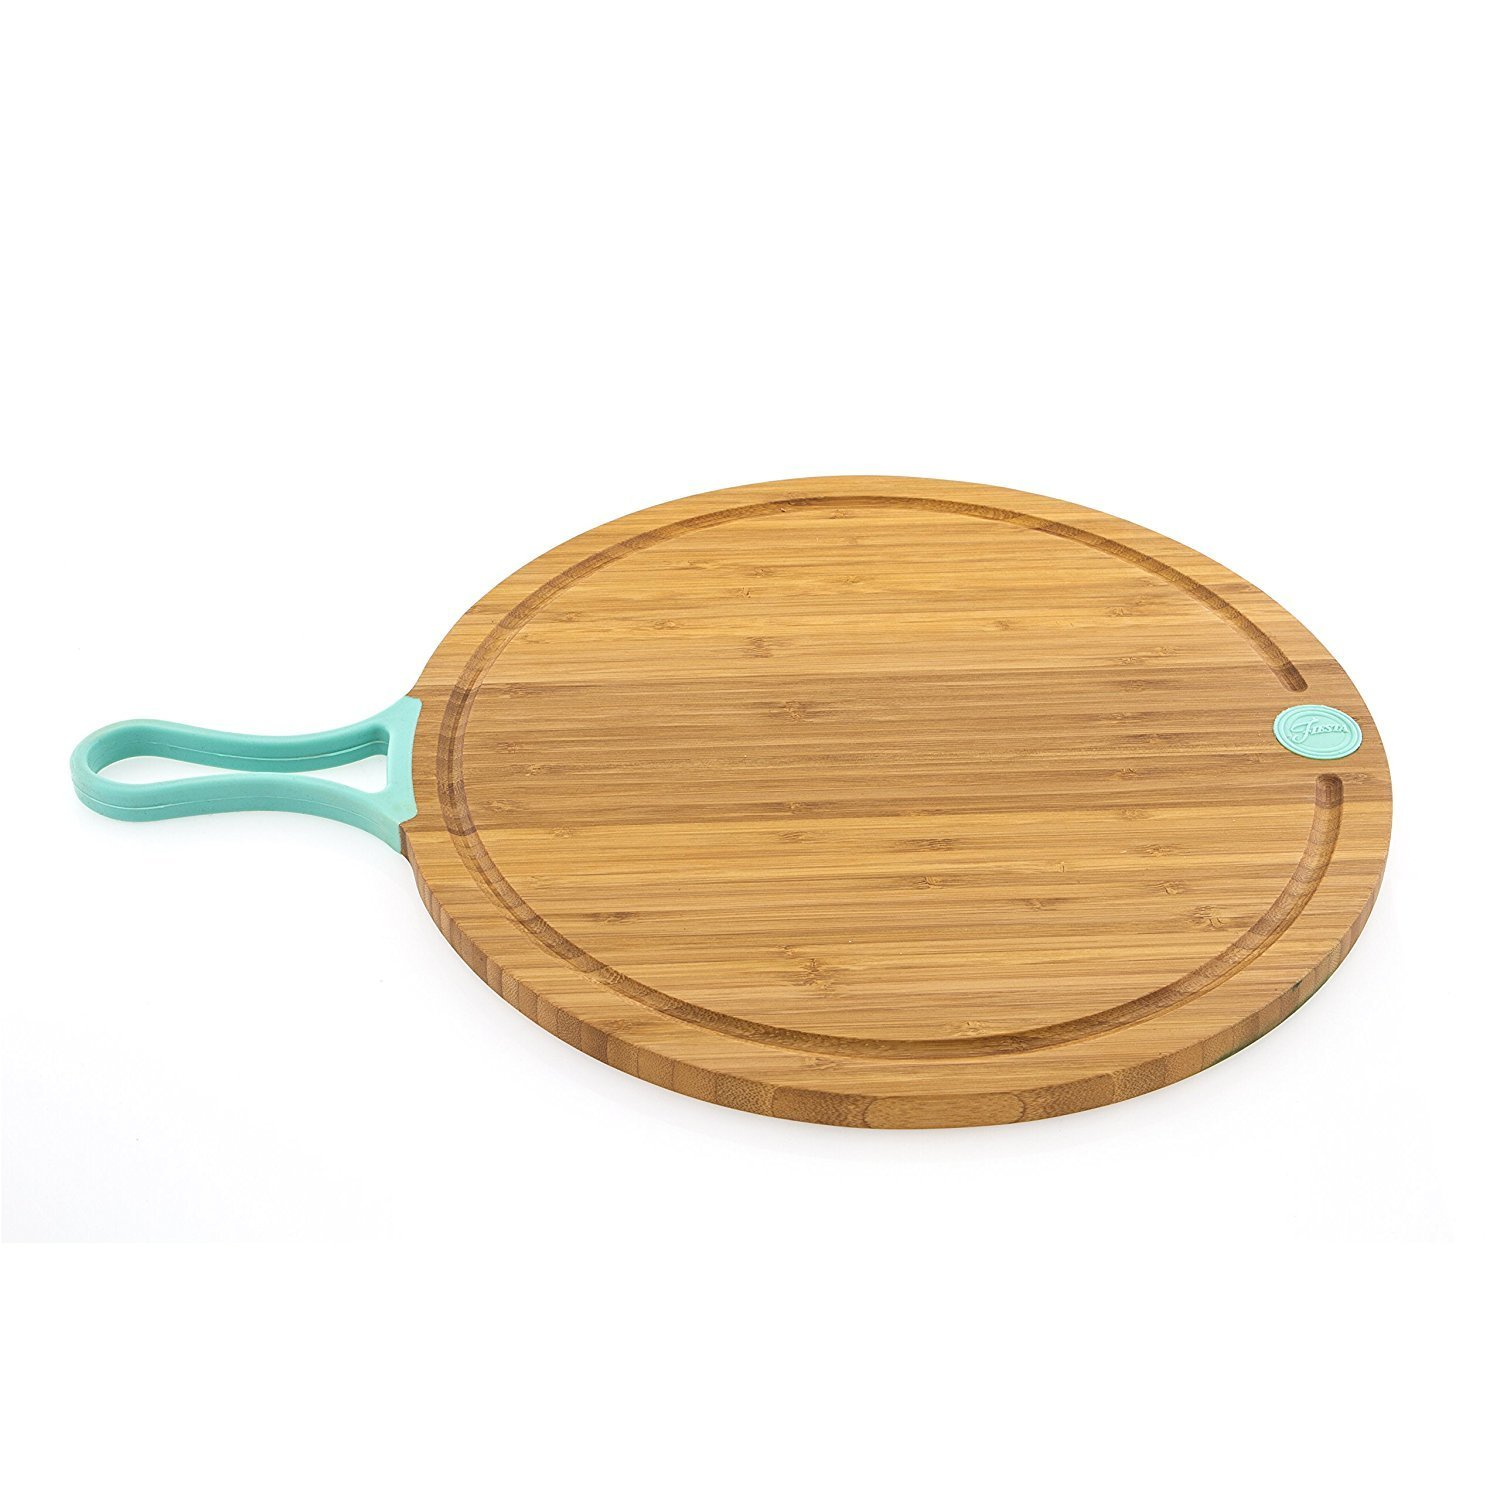 Fiesta Bamboo and Silicone Paddle Board by Overstock